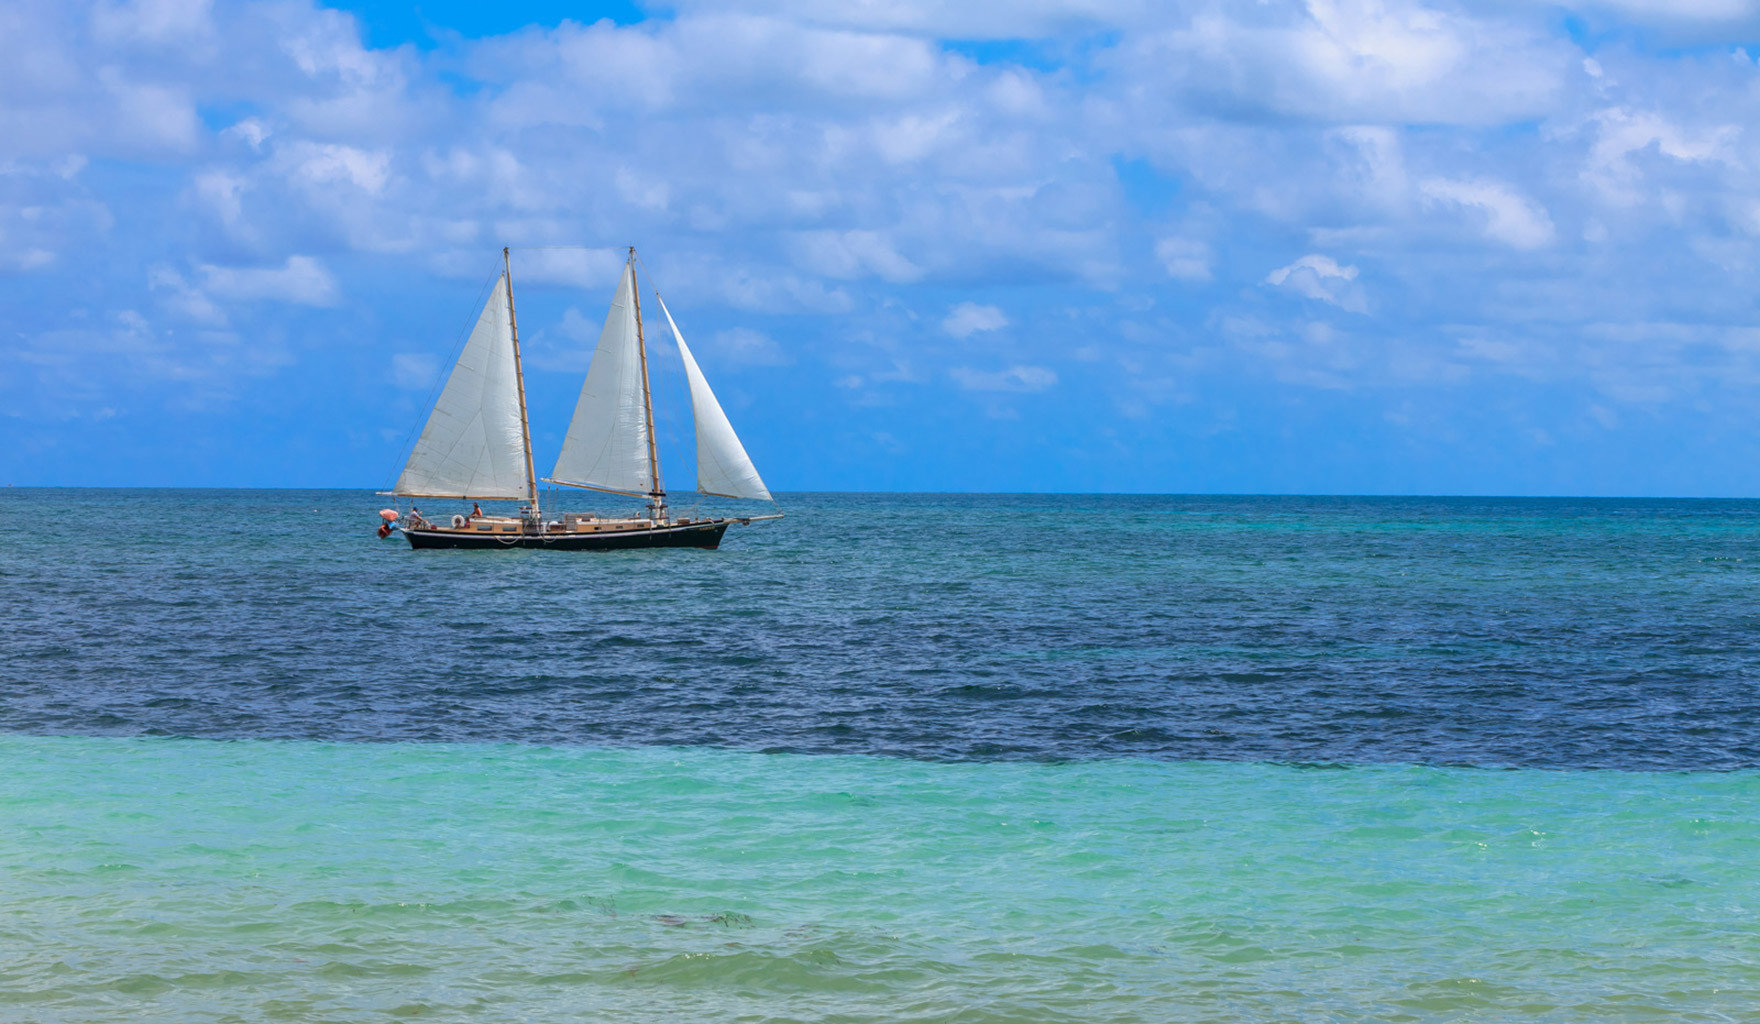 water sky Sea watercraft transport Boat Ocean sailing vessel sailboat vehicle horizon sail shore sailing wind wave Beach caribbean Coast wave sailing ship Island cape wind day distance